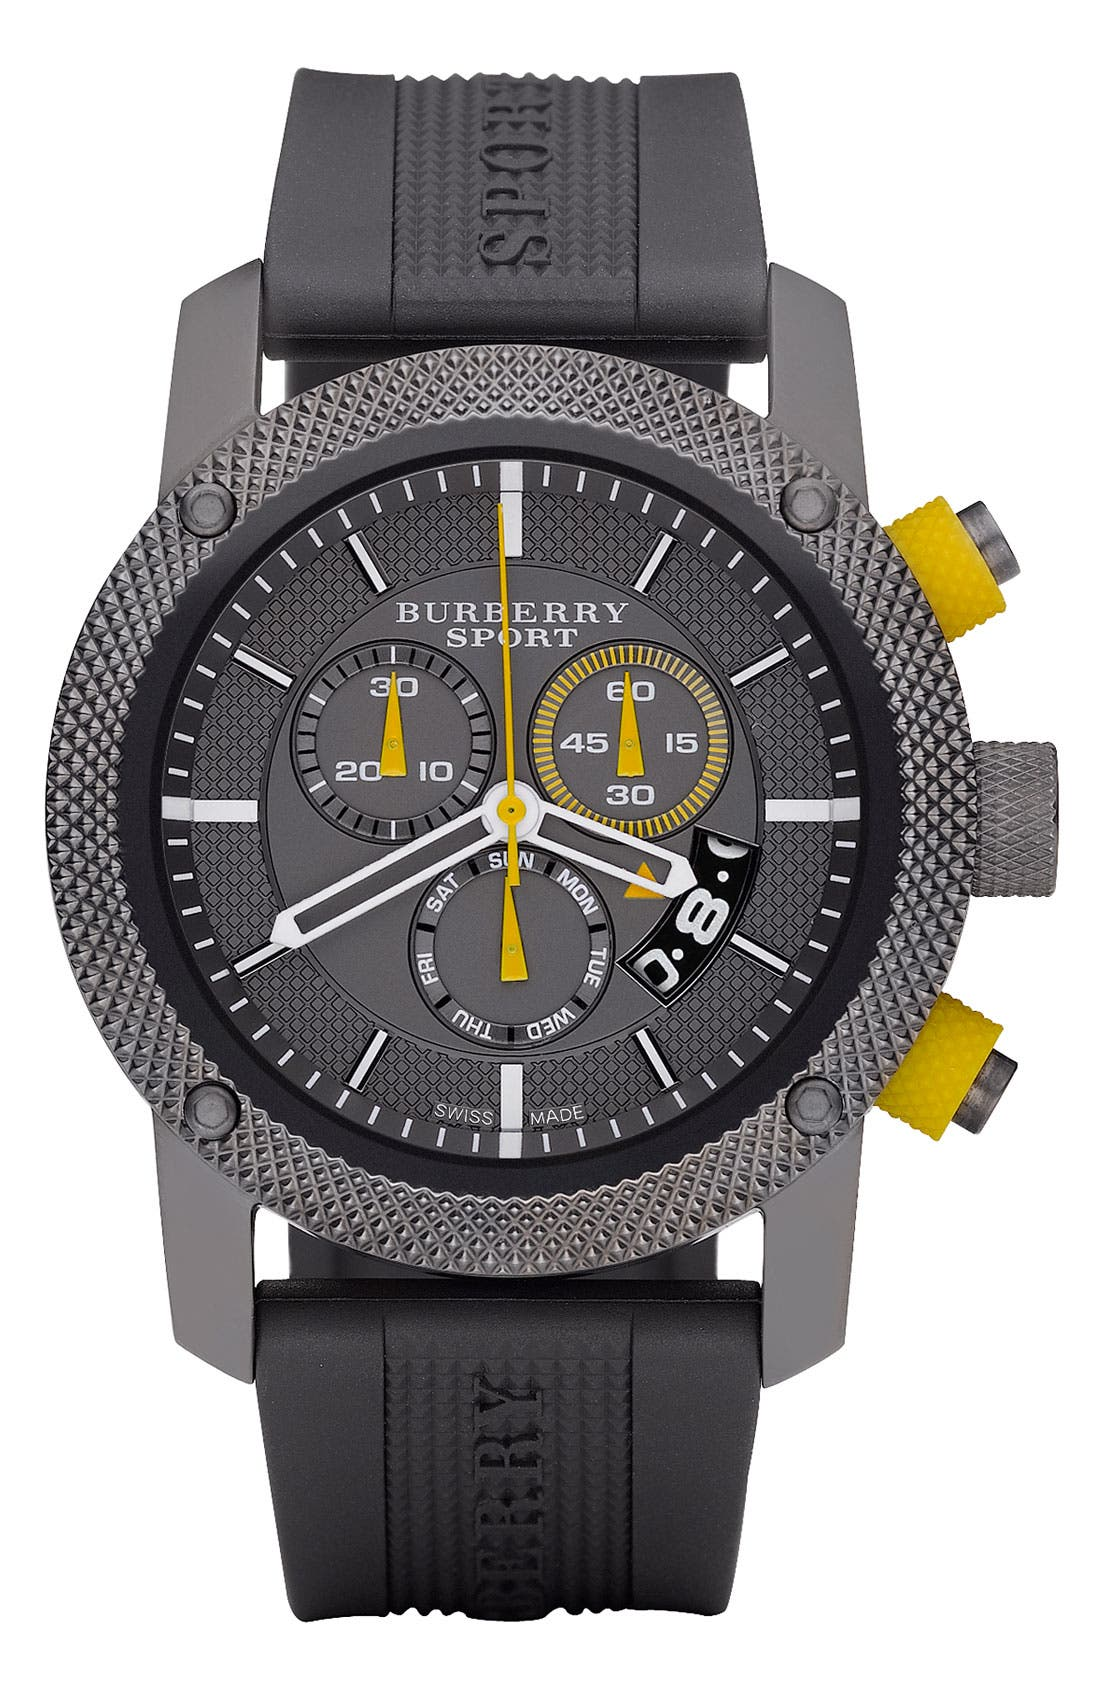 burberry sport chronograph nordstrom